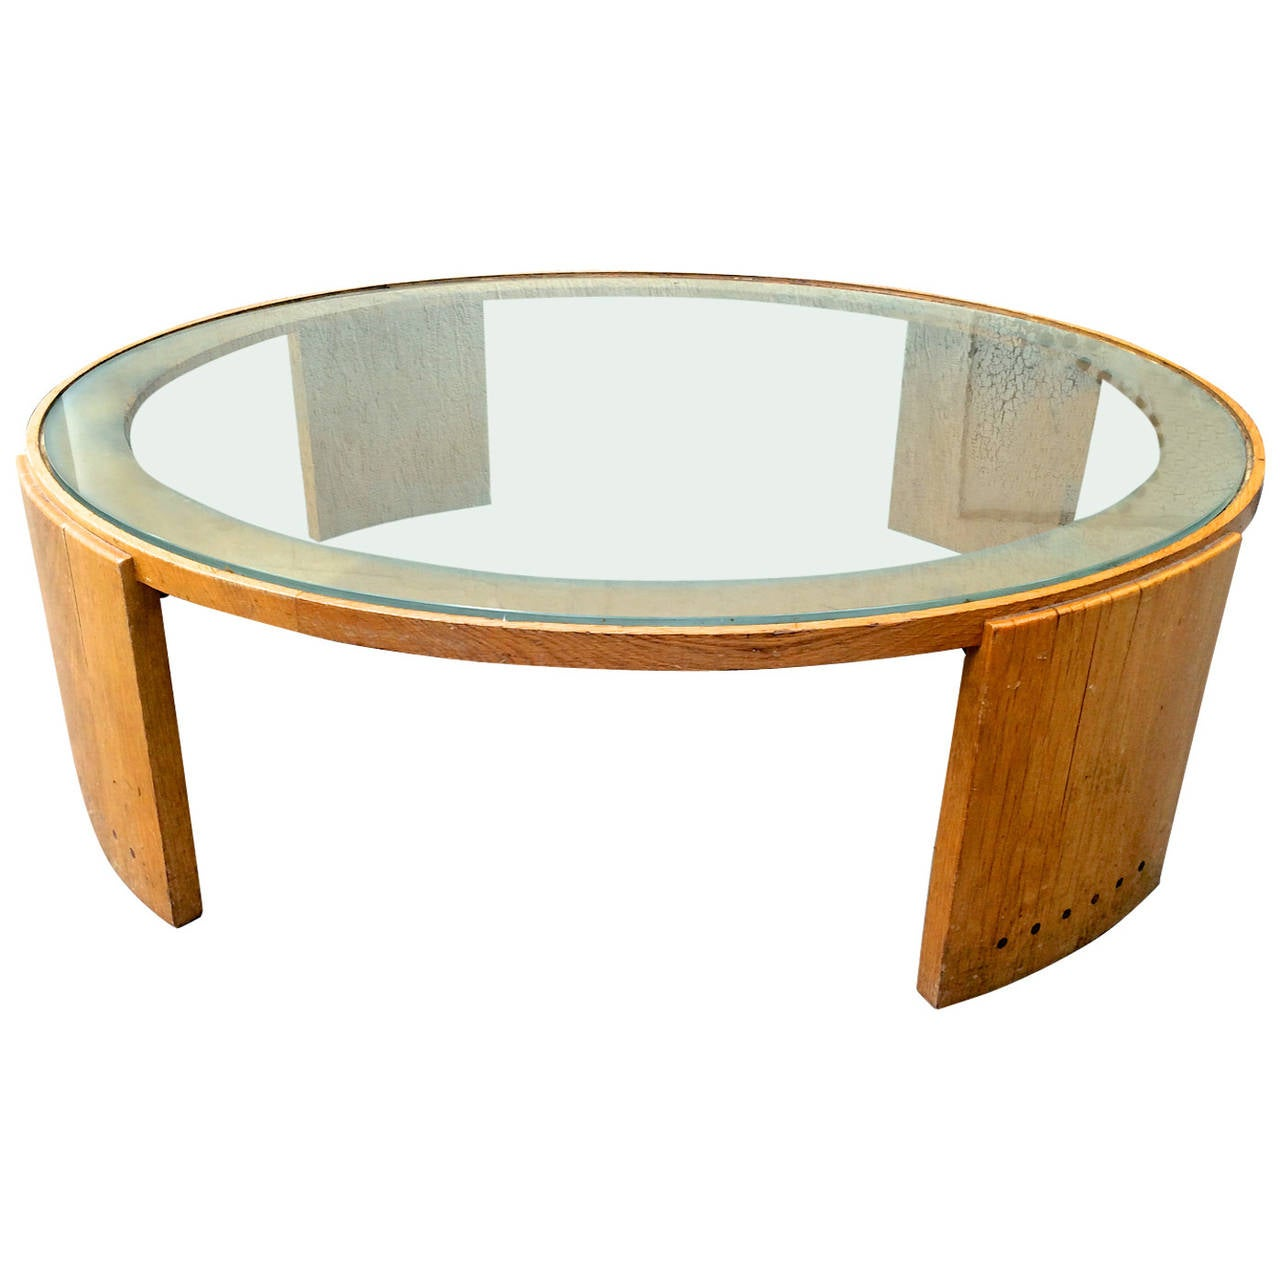 Jacques adnet very large round coffee table in oak and glass top at 1stdibs Glass furniture tops